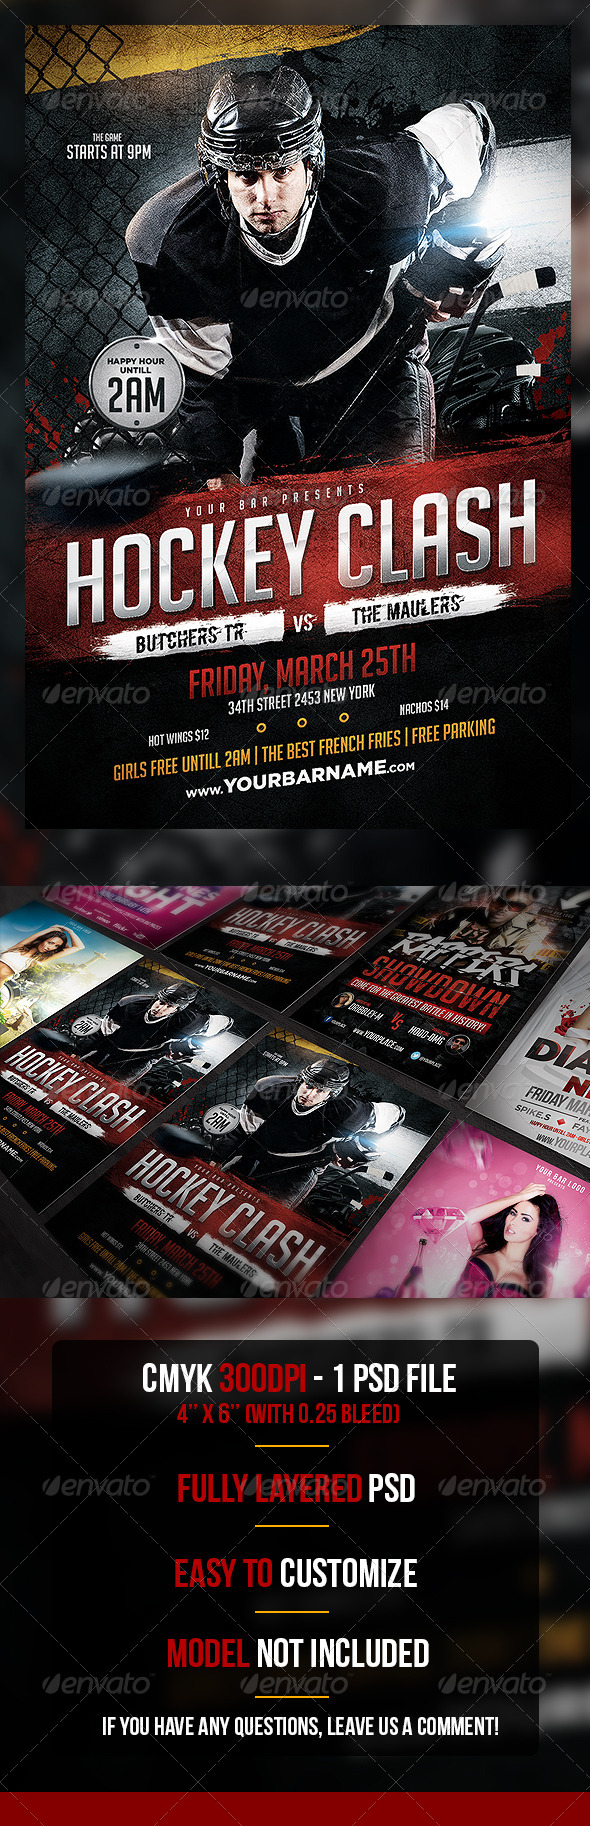 Hockey Clash Flyer Template - Sports Events